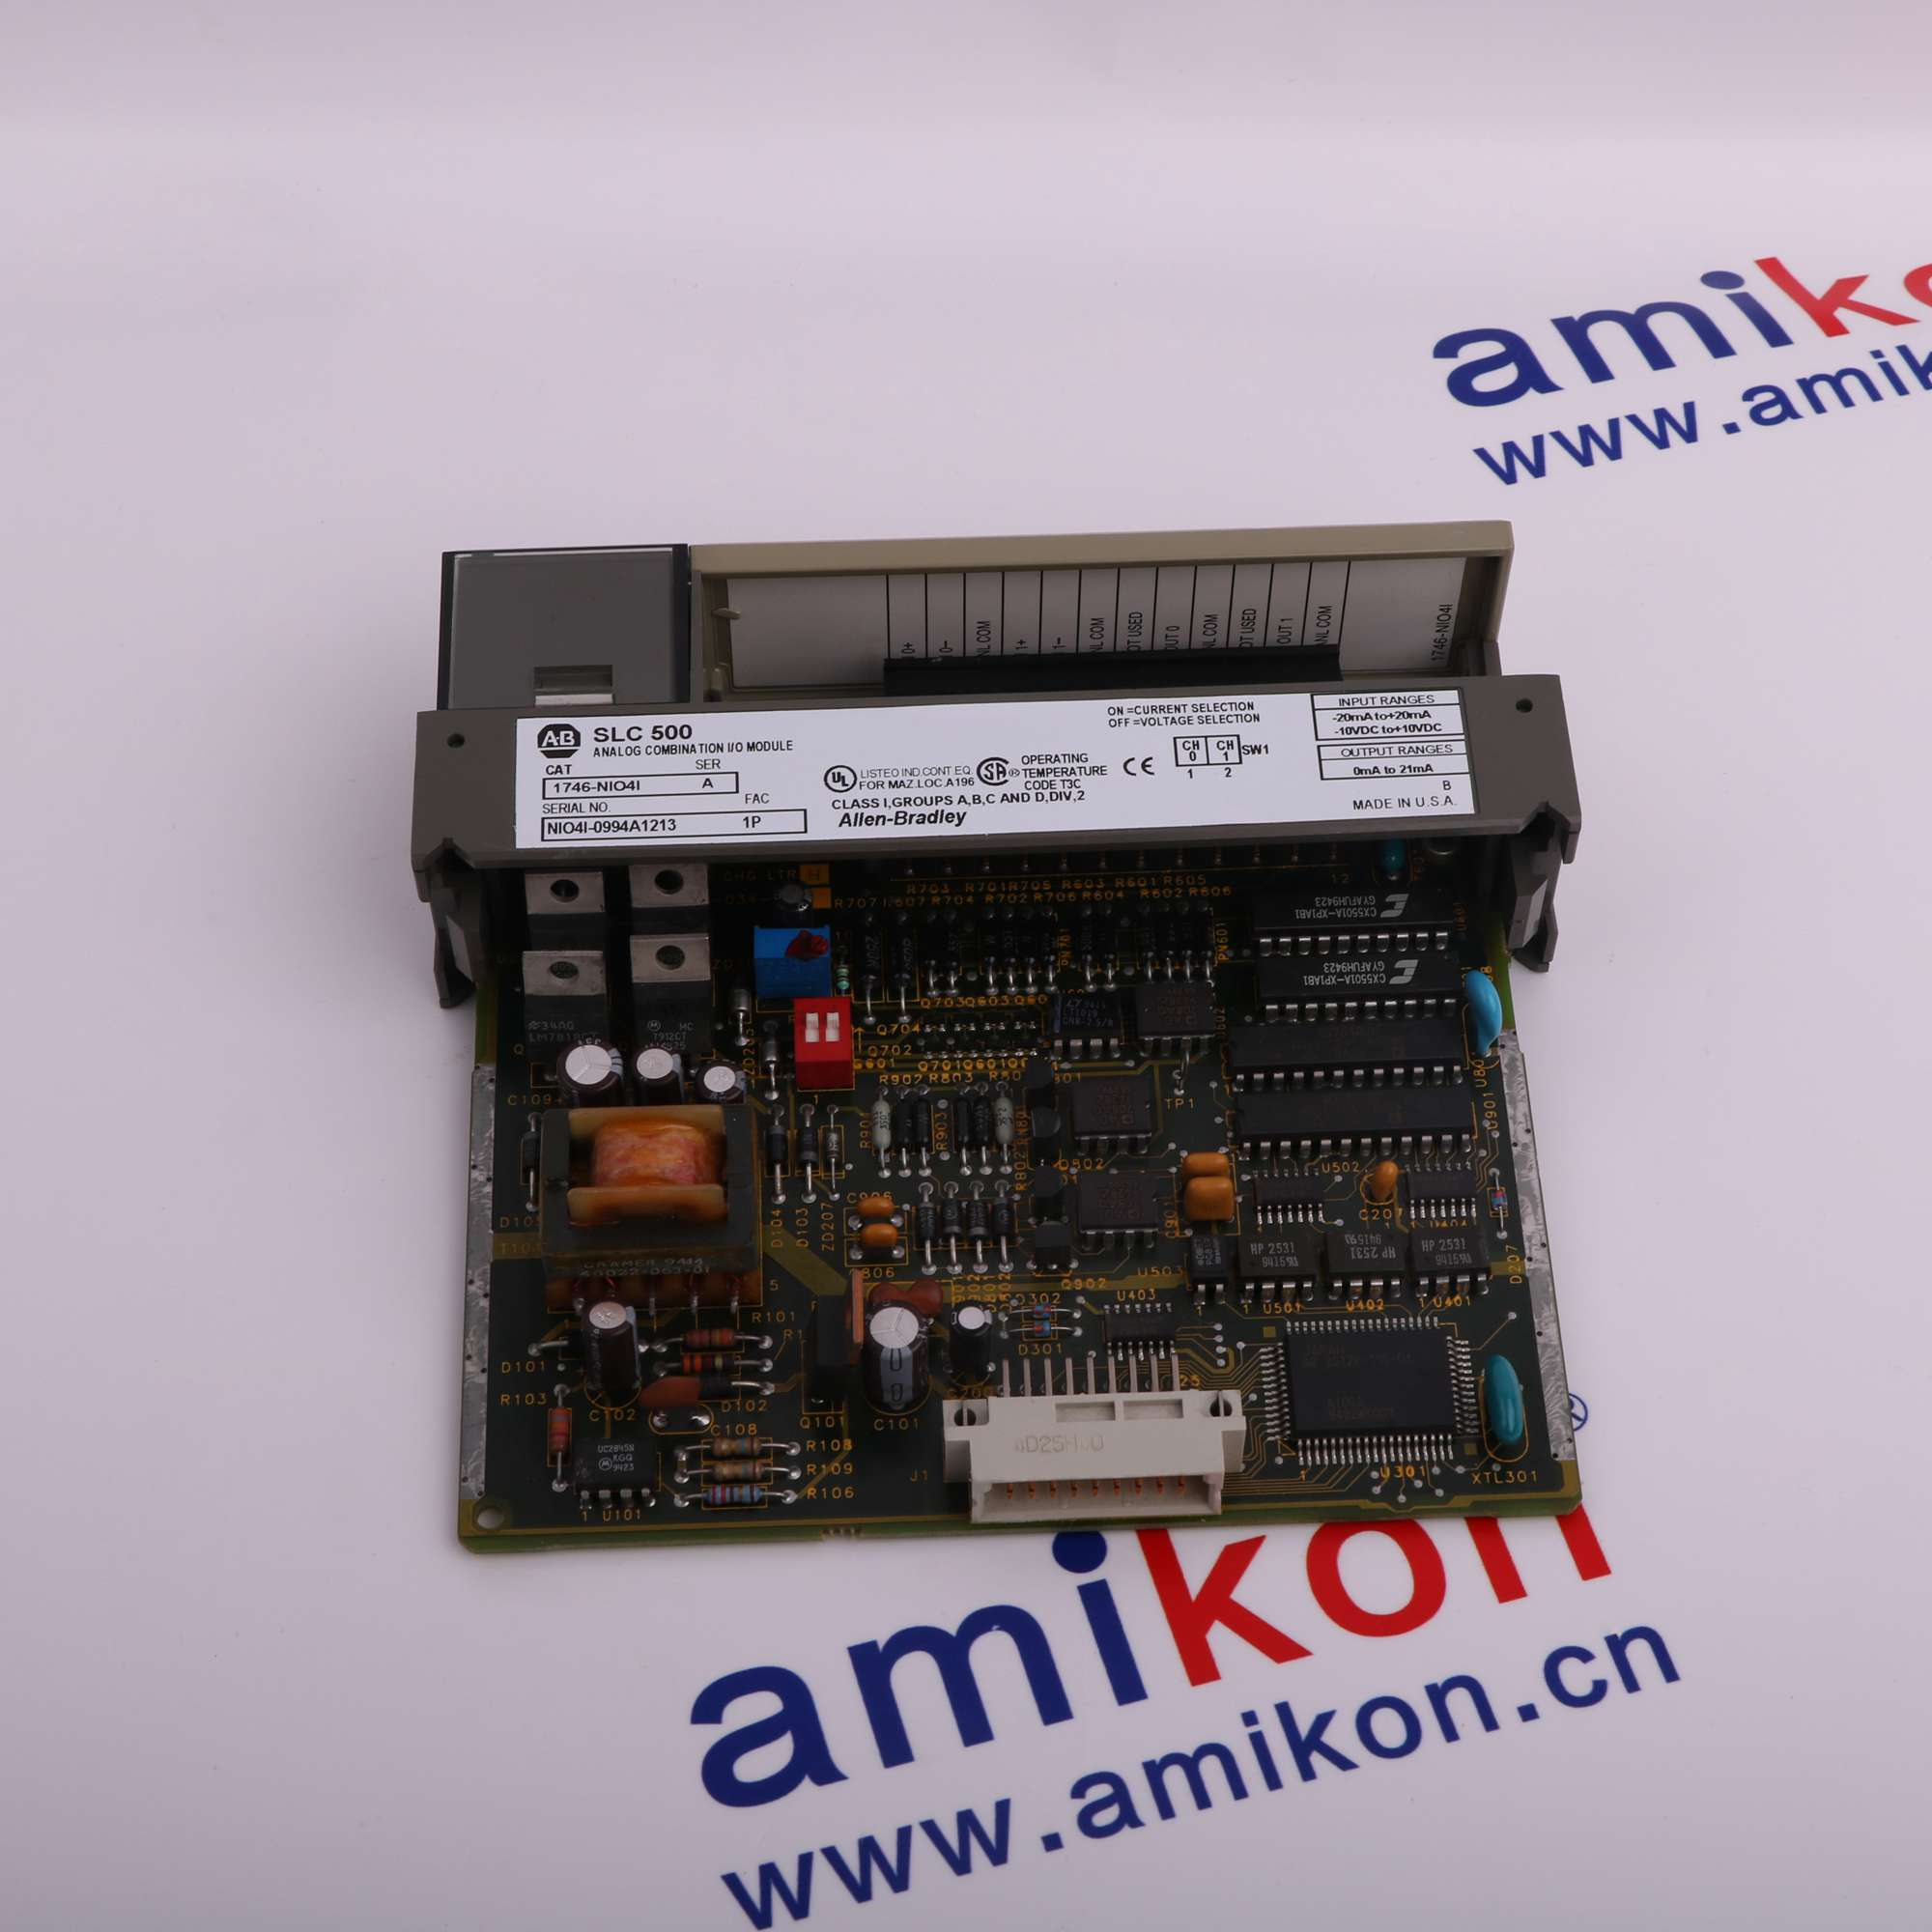 A20B-8201-0212 ABB NEW &Original PLC-Mall Genuine ABB spare parts global on-time delivery